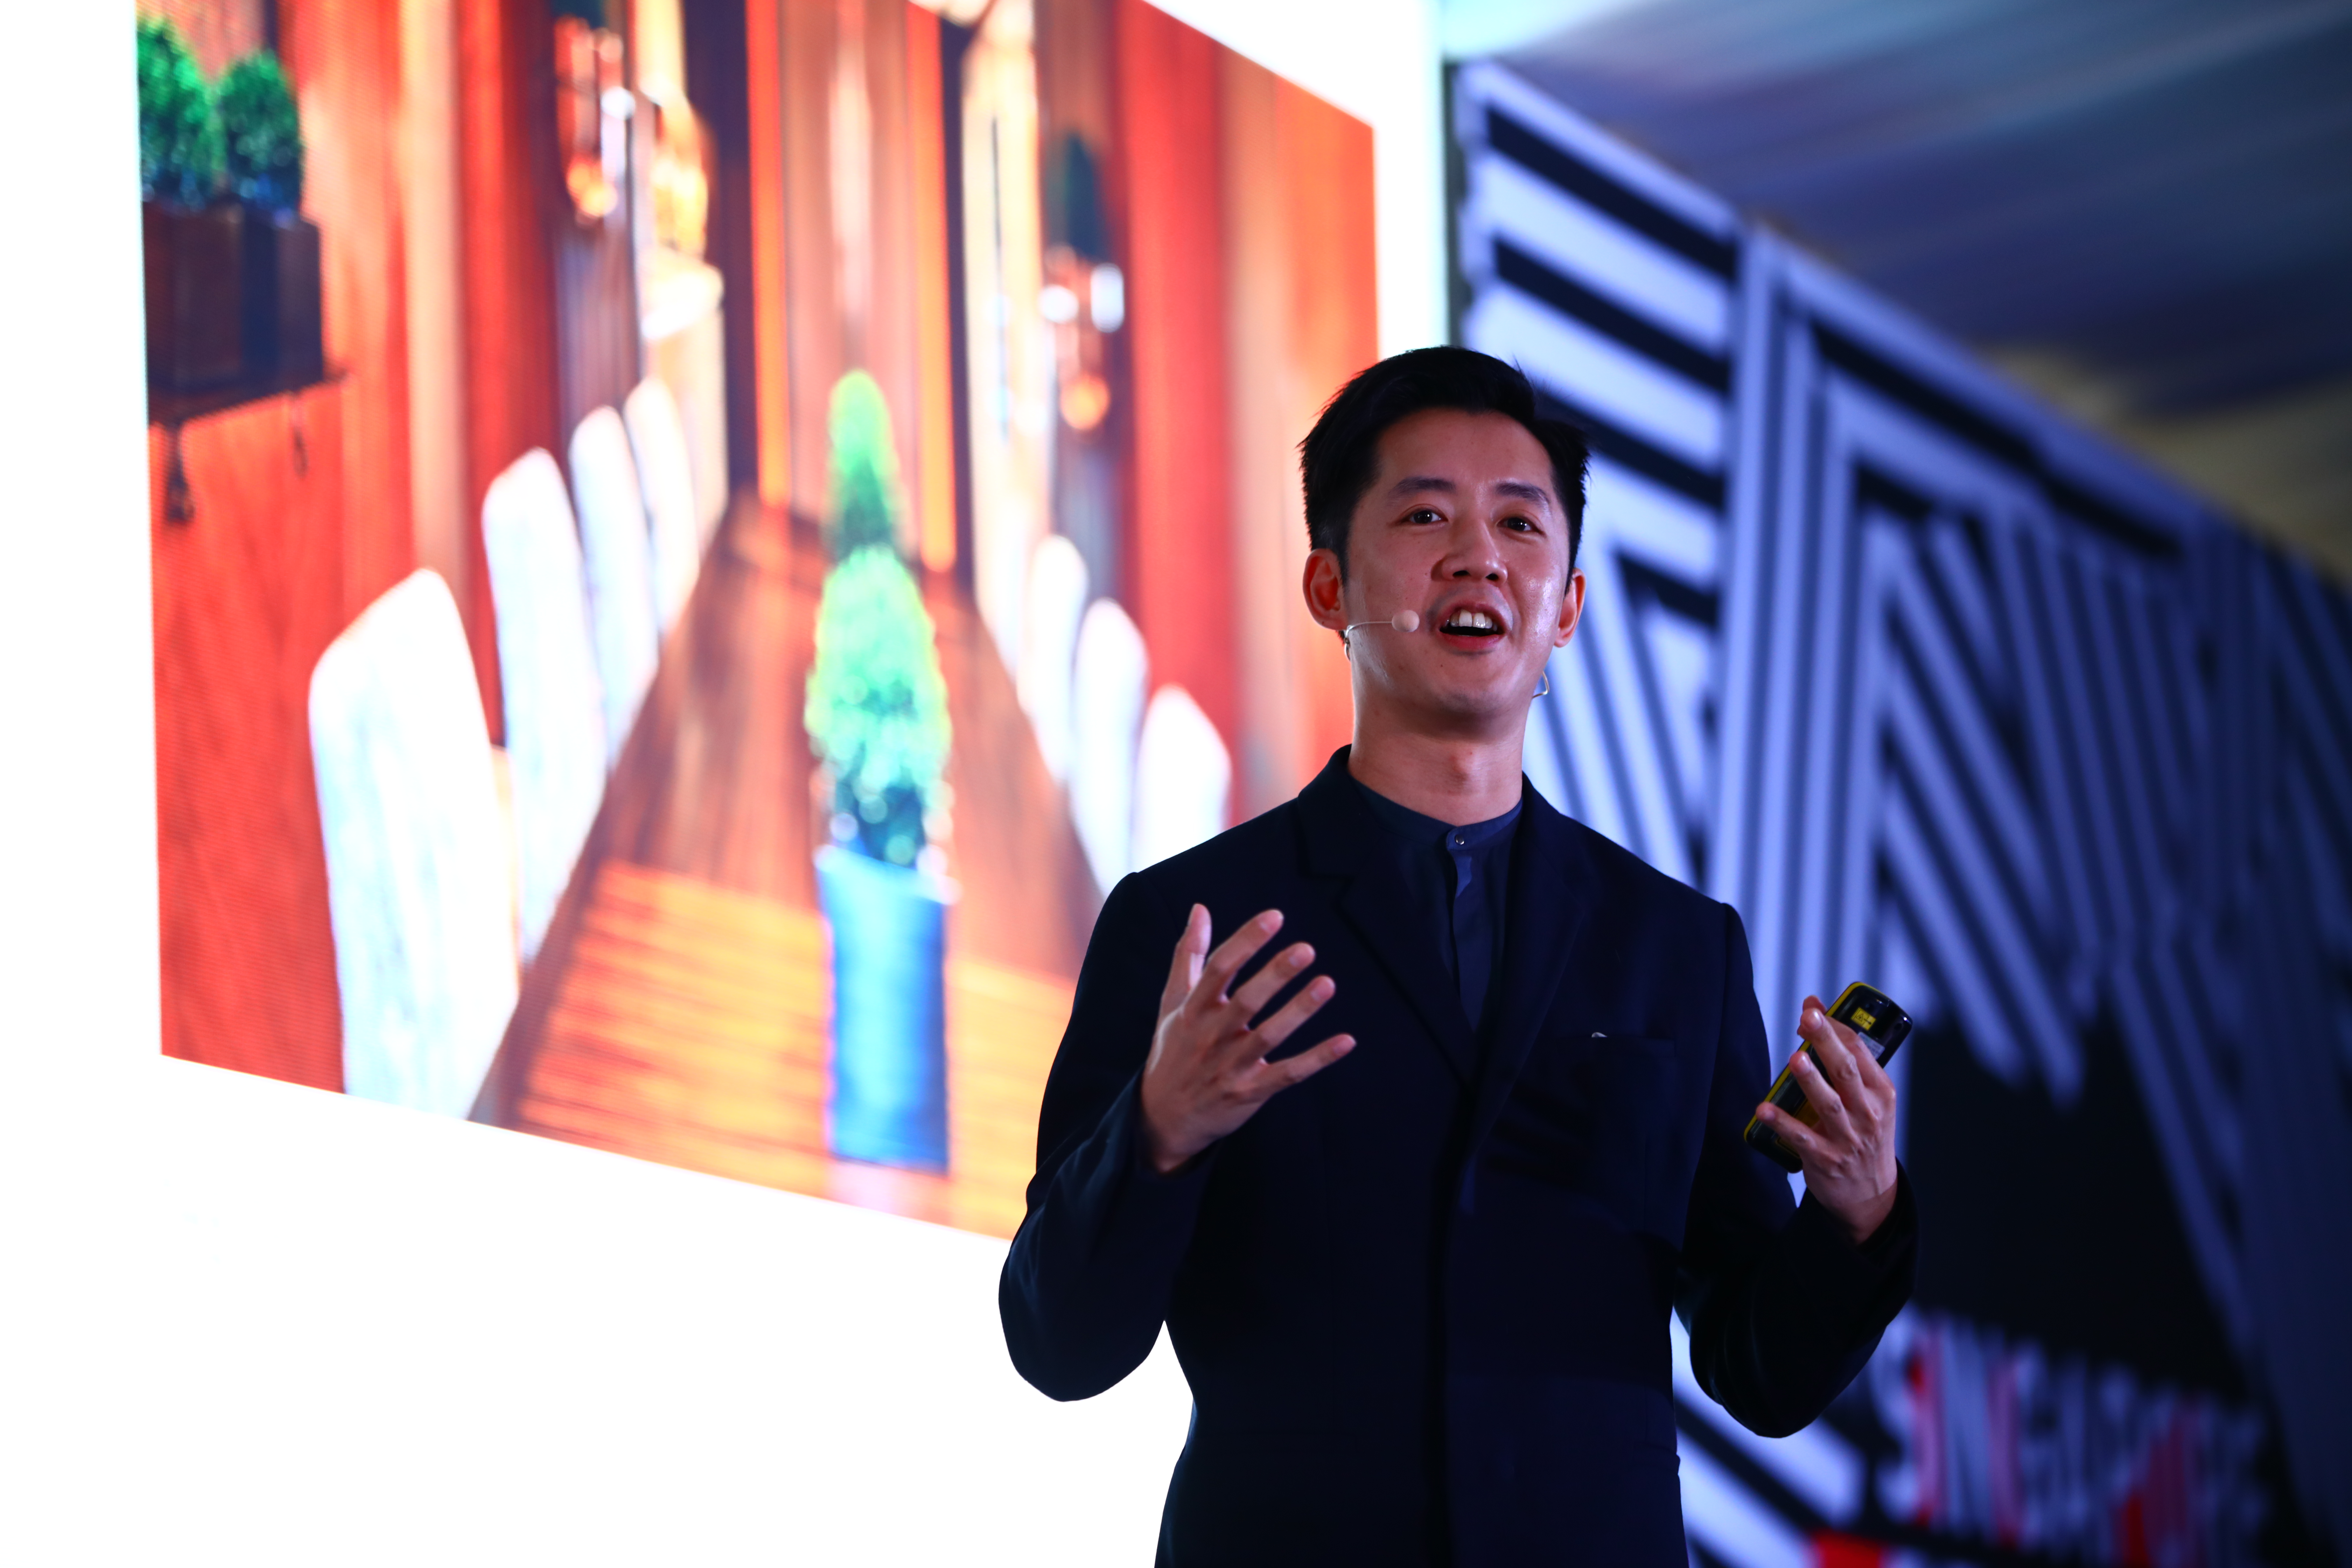 Andre Fu, architect and founder of AFSO, presenting at Singapore Design Week's Innovation by Design Conference.